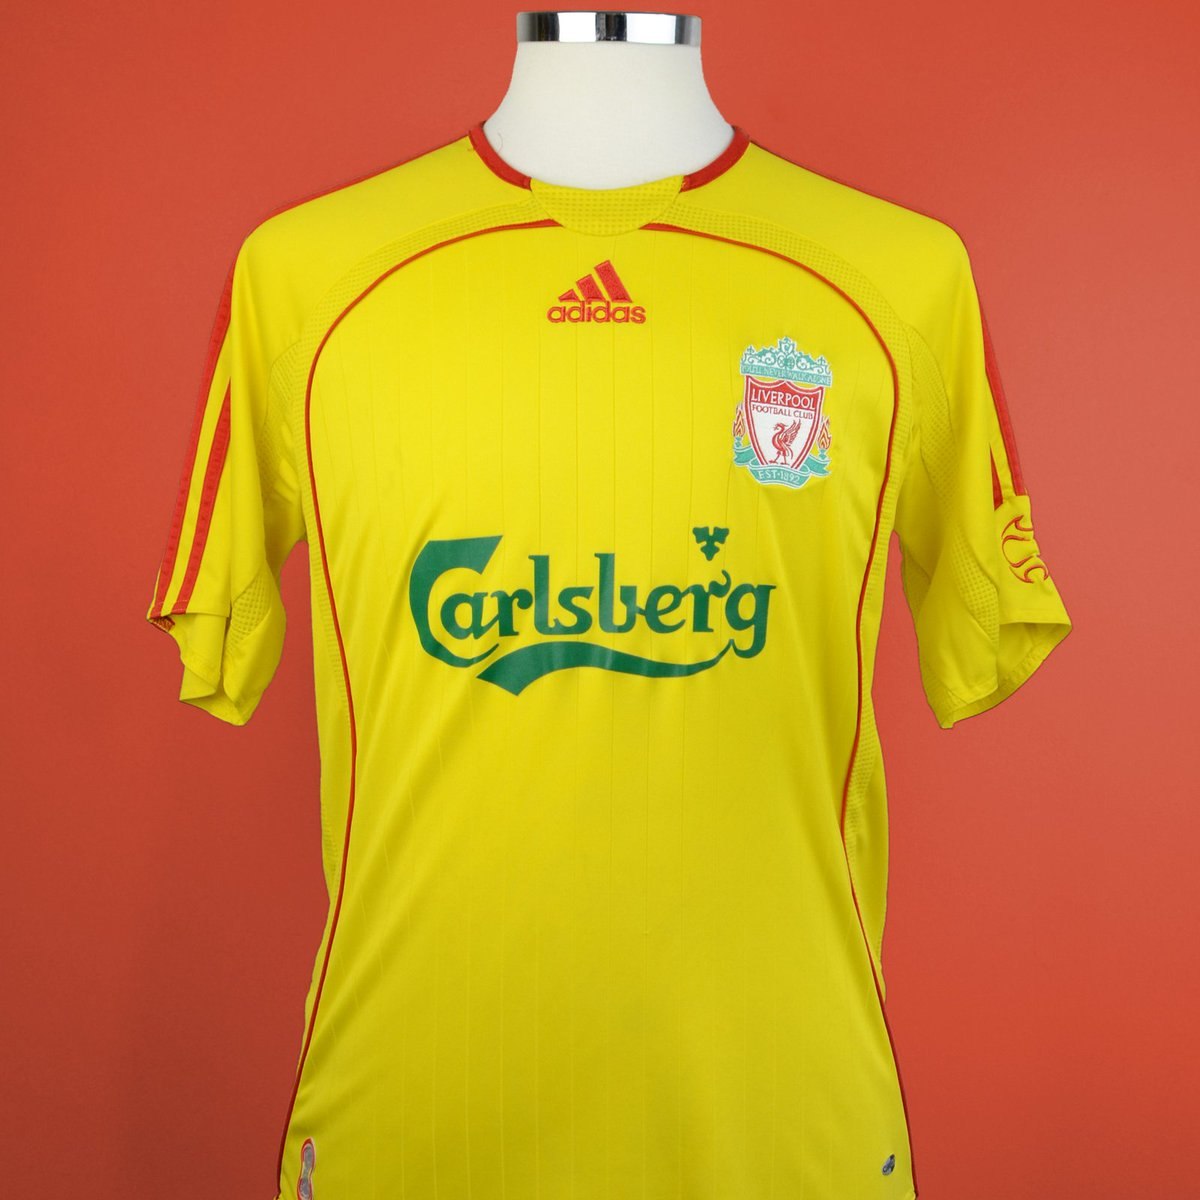 super popular 60c34 869a8 Classic Football Shirts on Twitter: